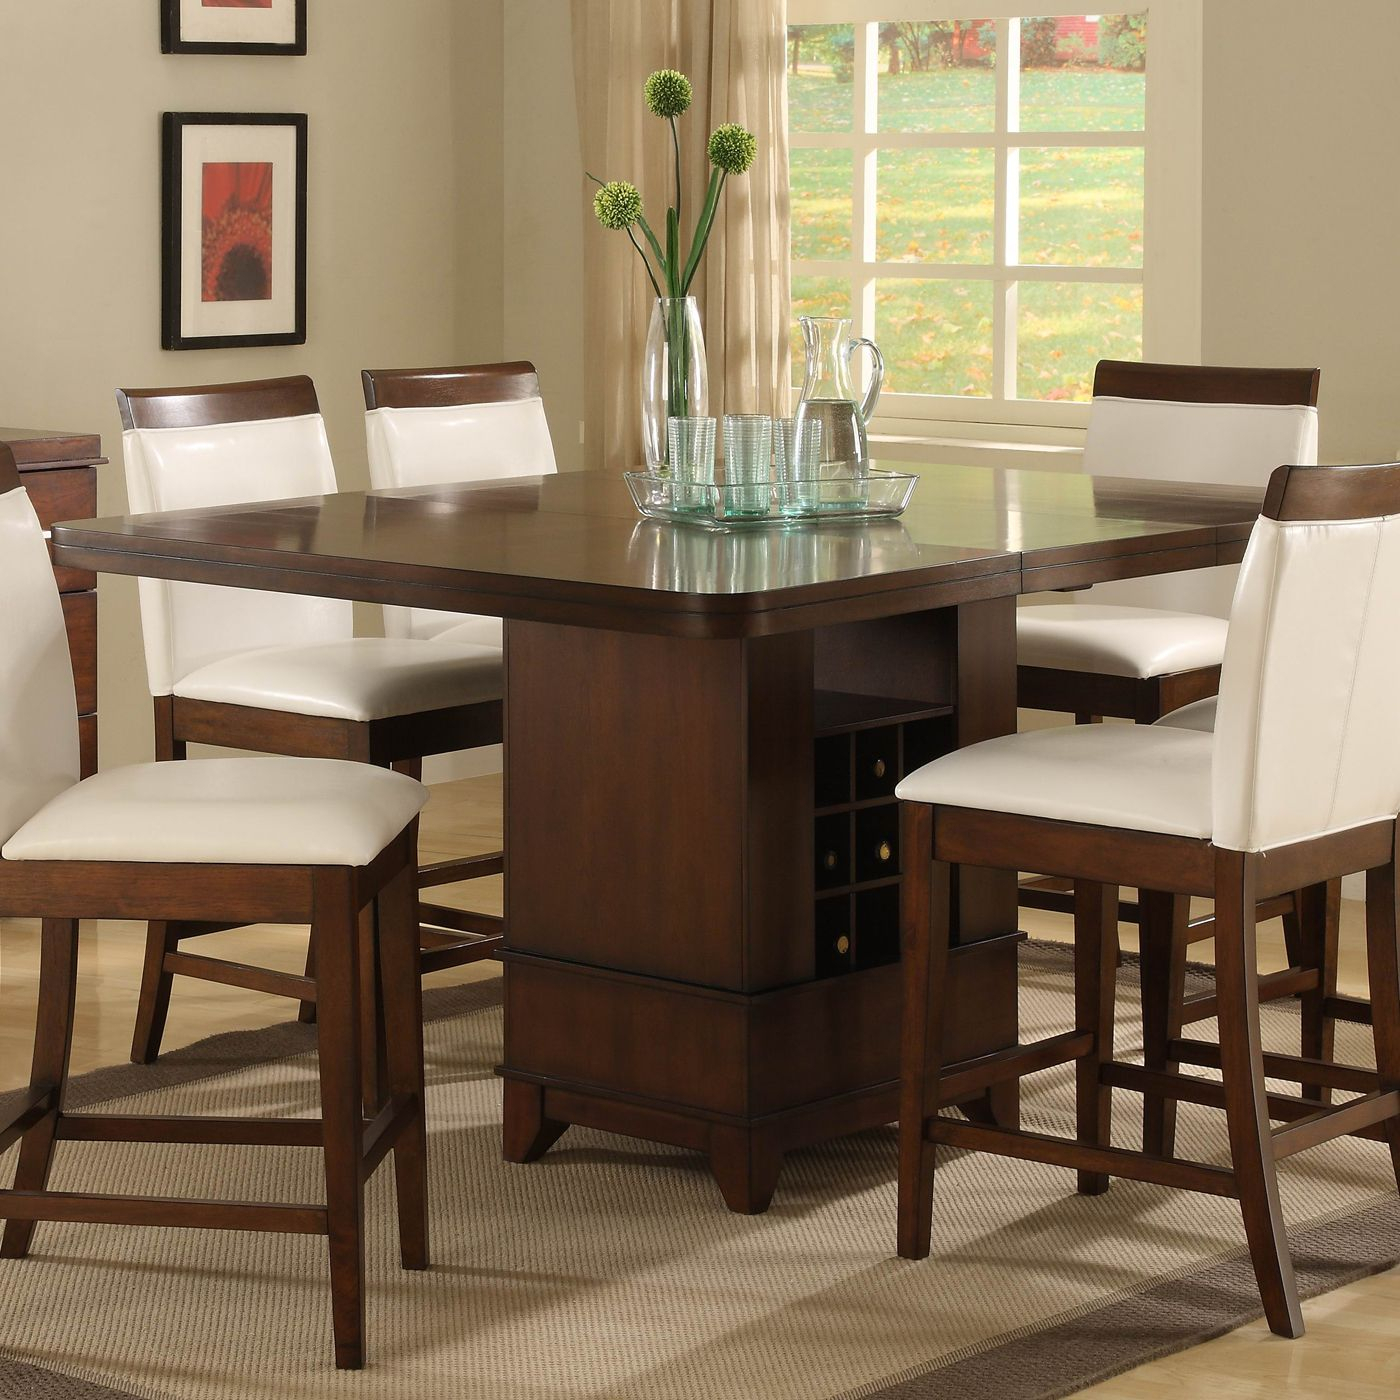 Pedestal Table Elmhurst Counter Height Dining Table, Brown Pertaining To Best And Newest Barra Bar Height Pedestal Dining Tables (View 12 of 15)